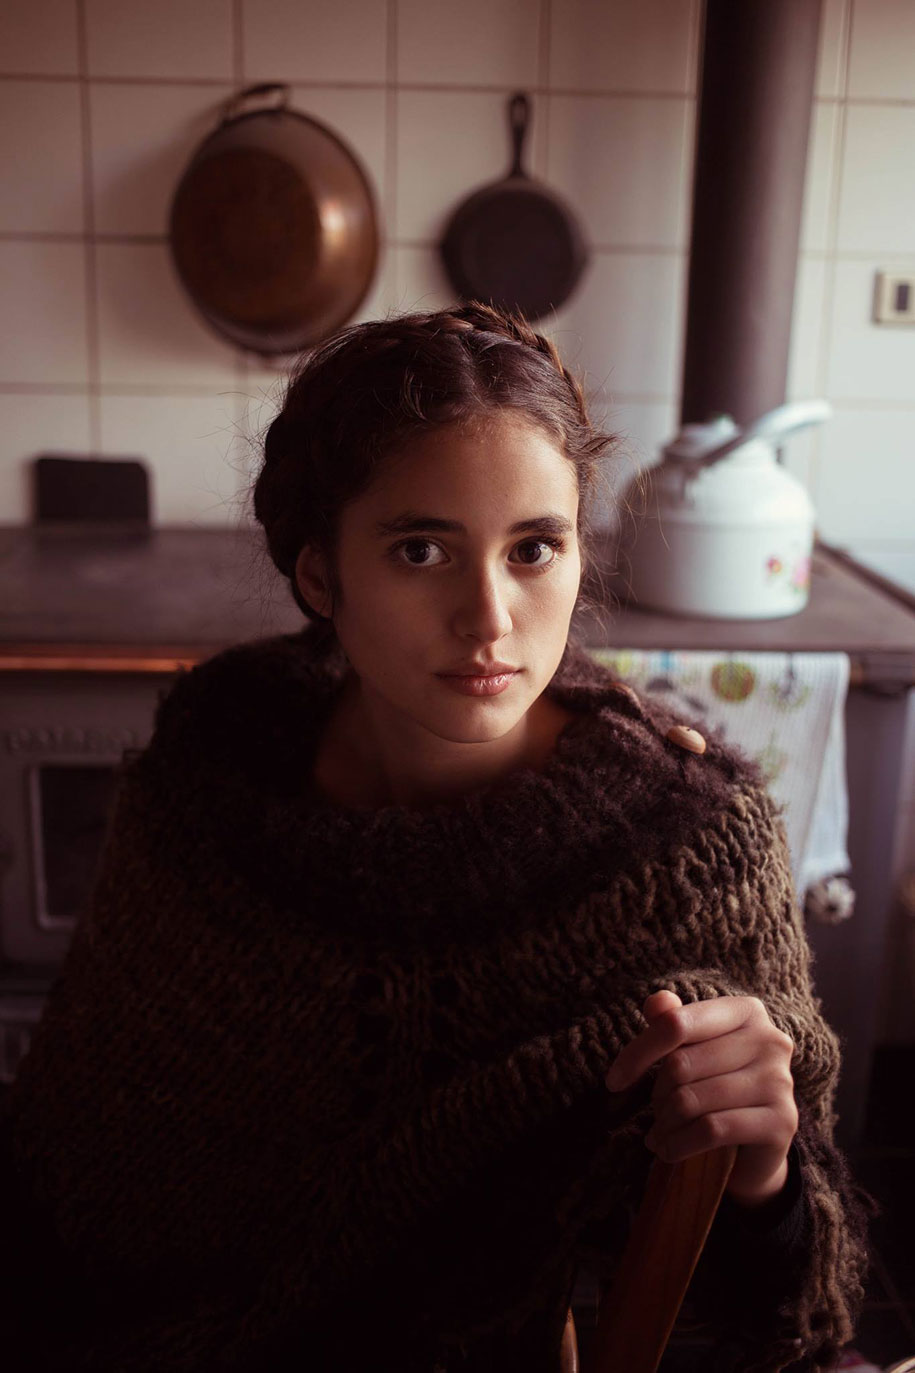 chile woman by mihaela noroc